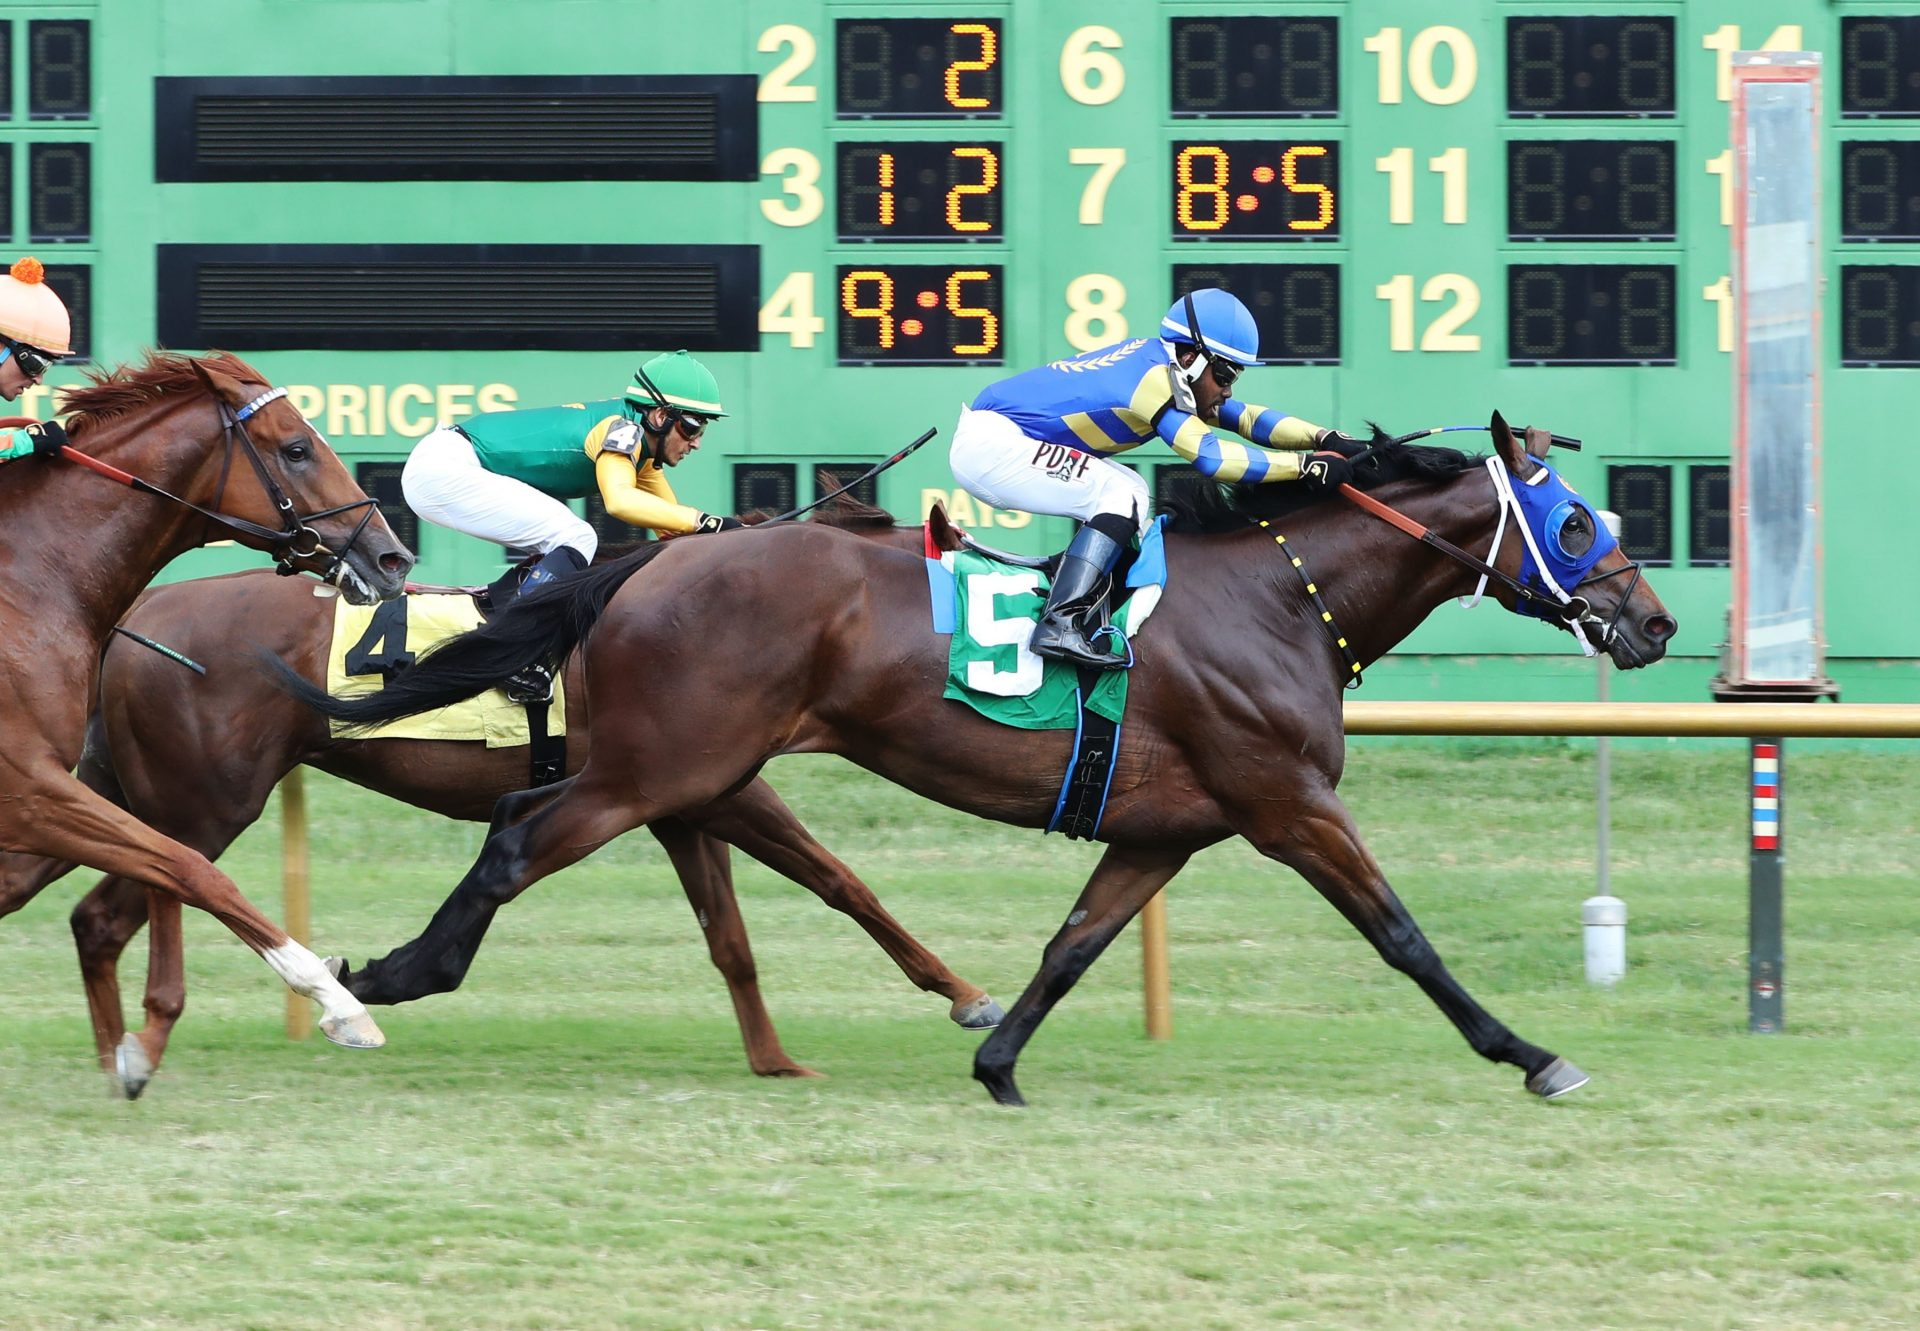 Betwithbothhands (Uncle Mo) winning the Kentucky Downs TVG Preview Mint Million